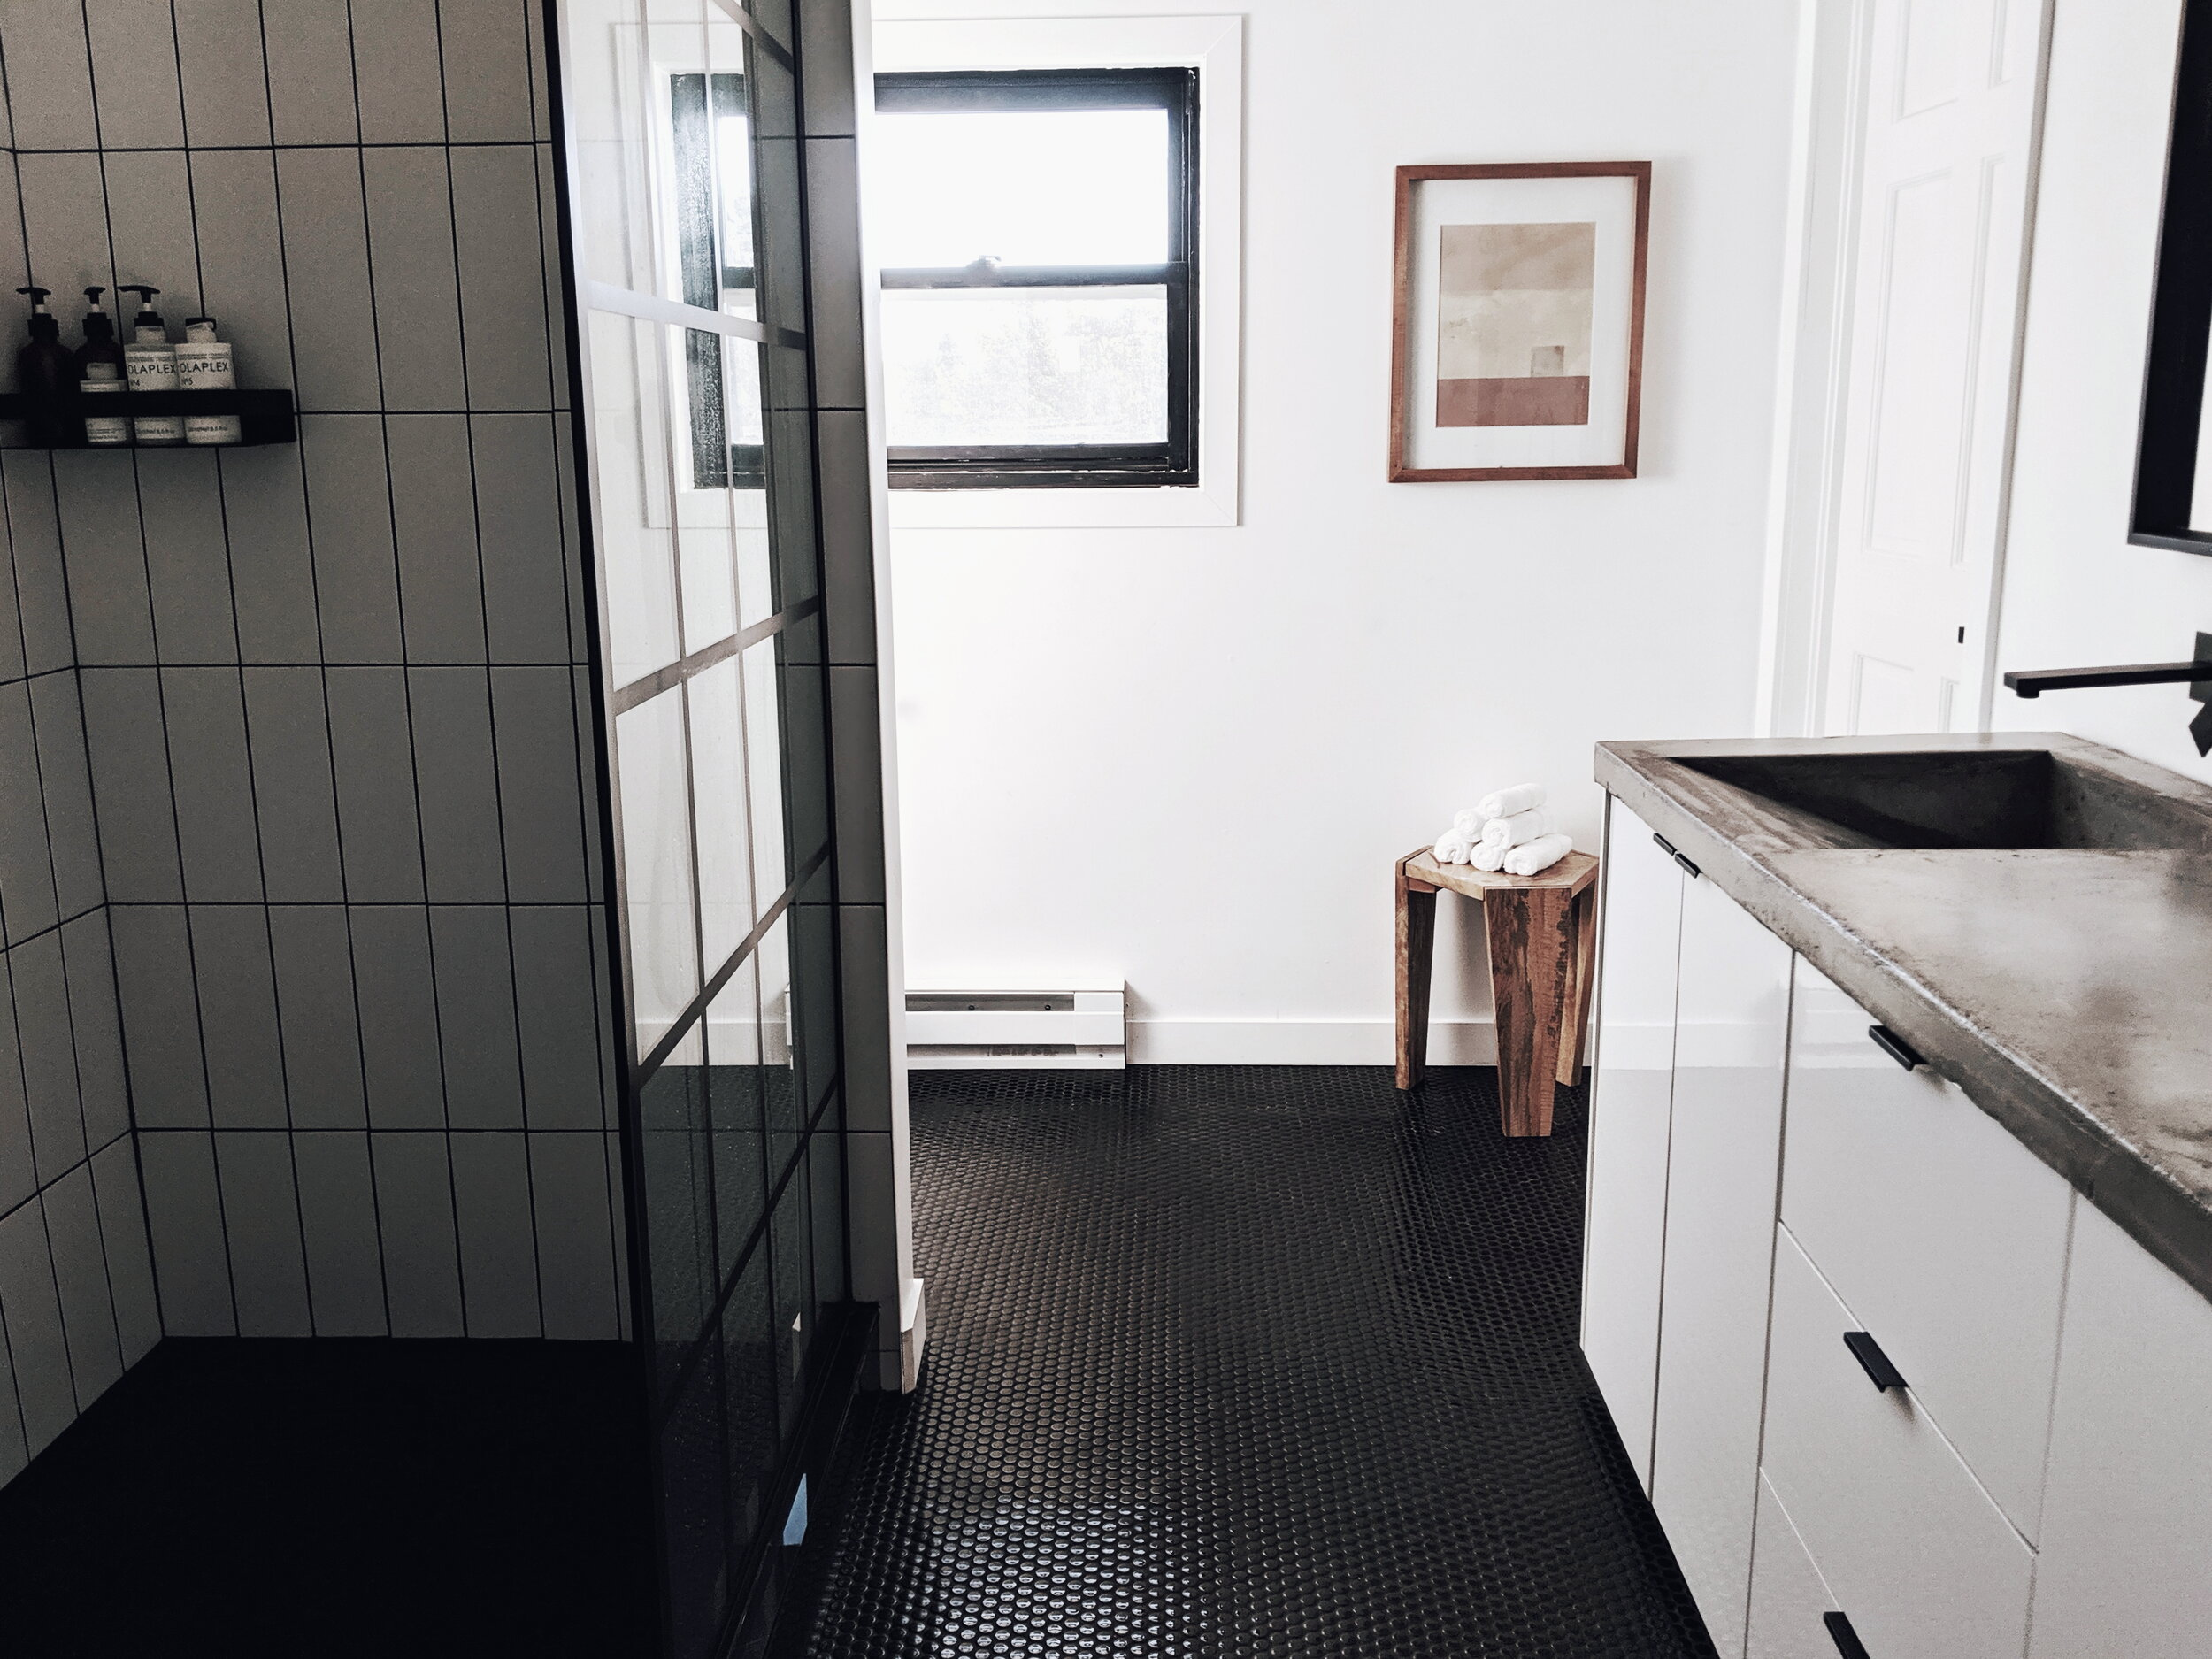 grout cover .jpg